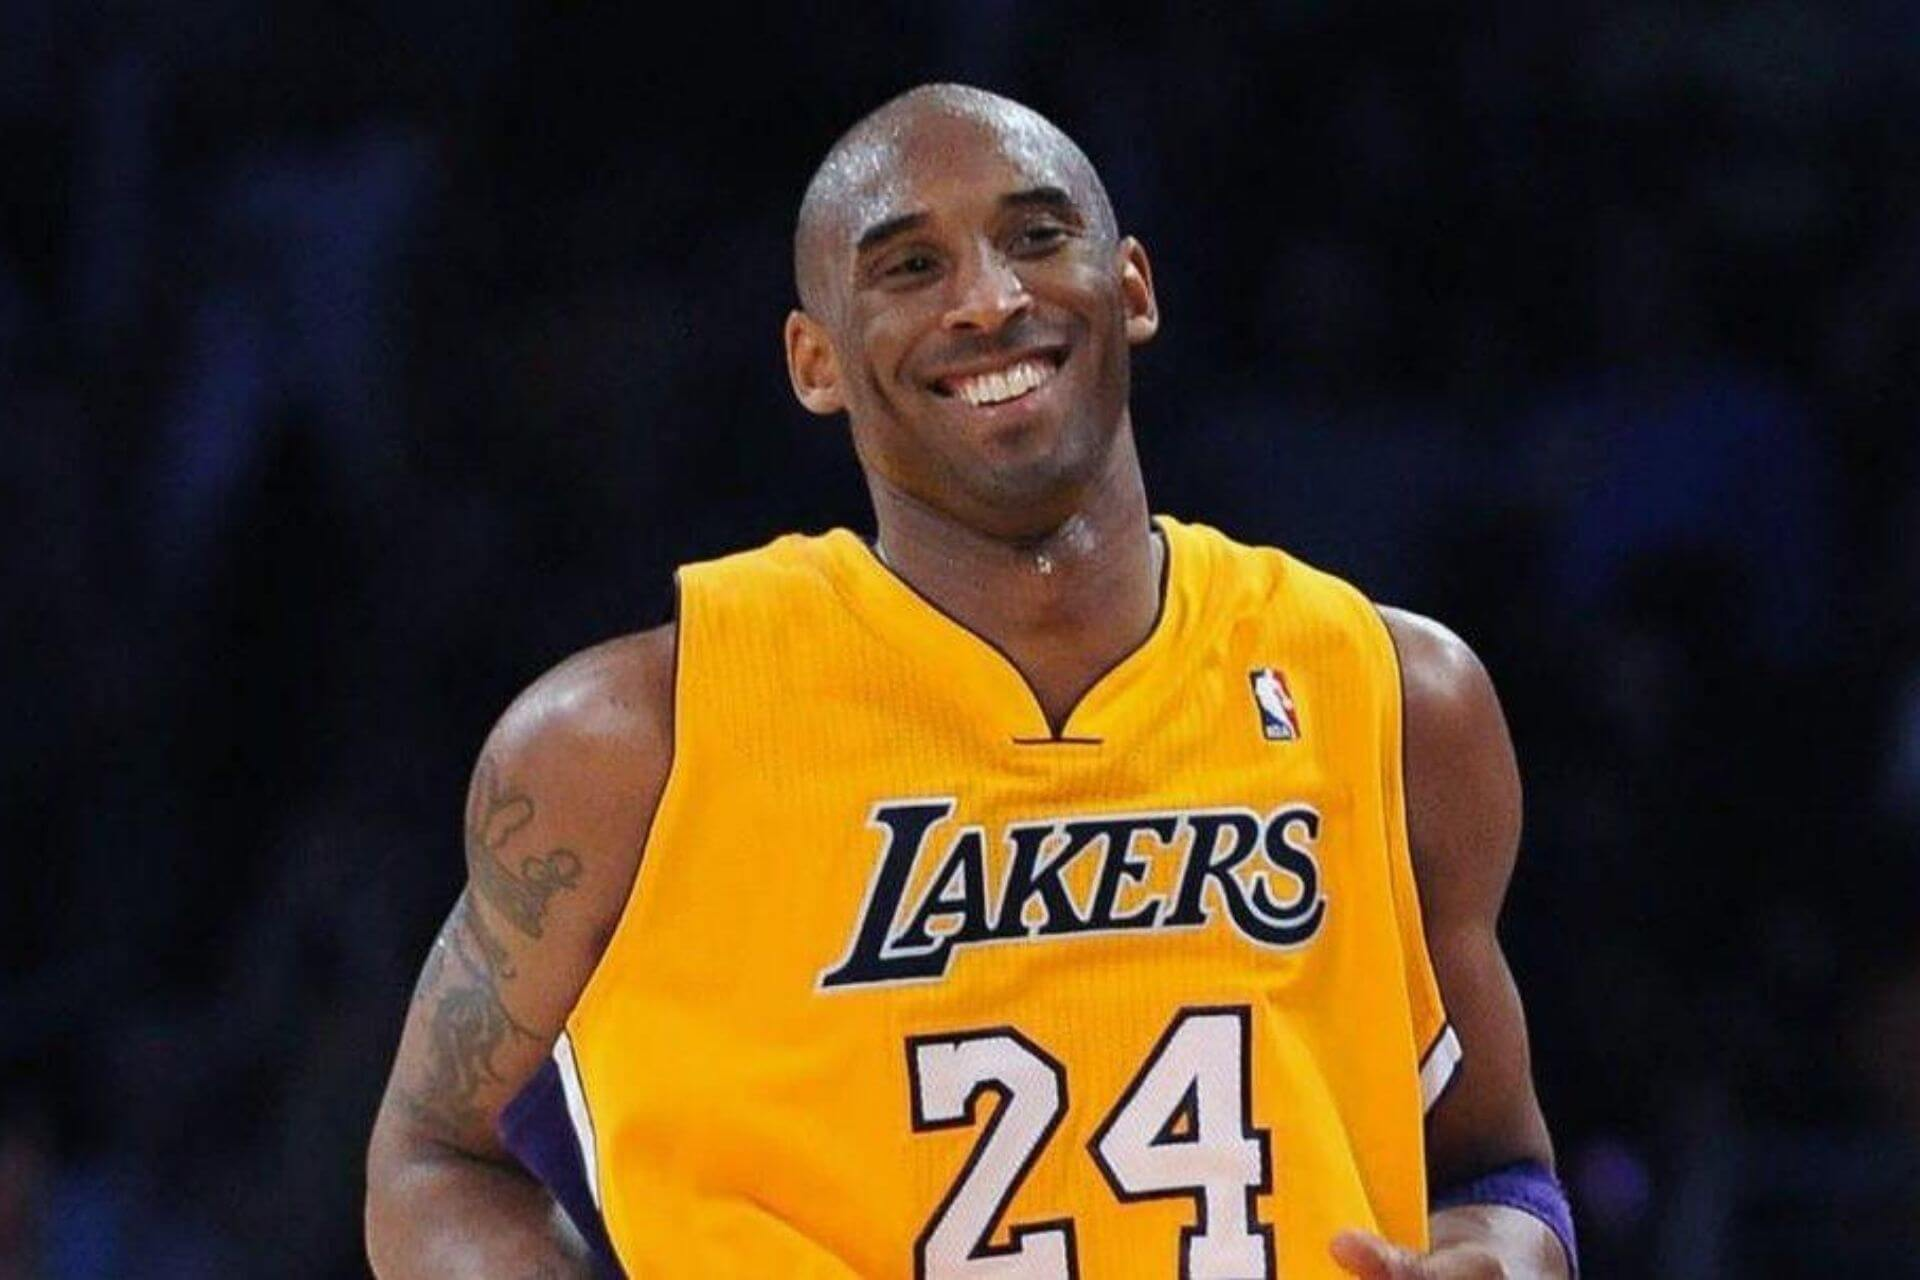 Monday Motivation quote: 5 quotes from Kobe Bryant to help you keep going